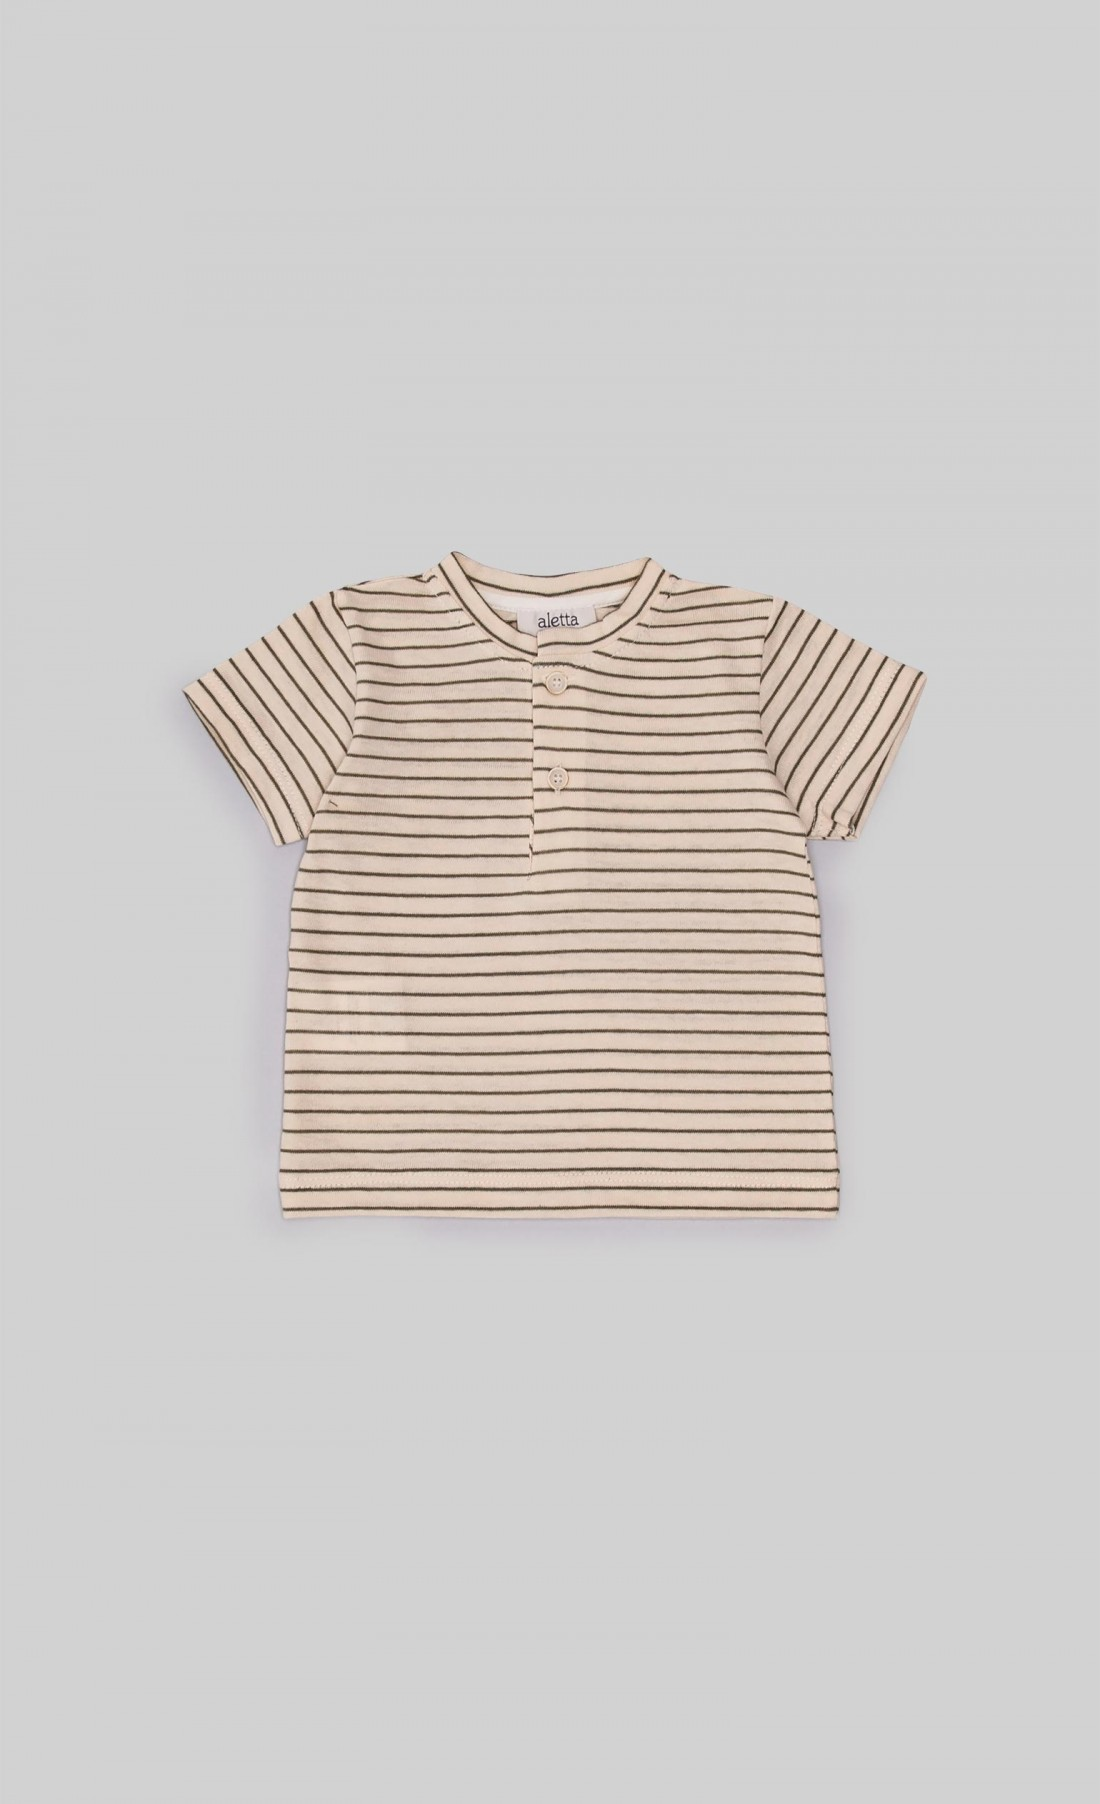 T-shirt in jersey panna con righe verde